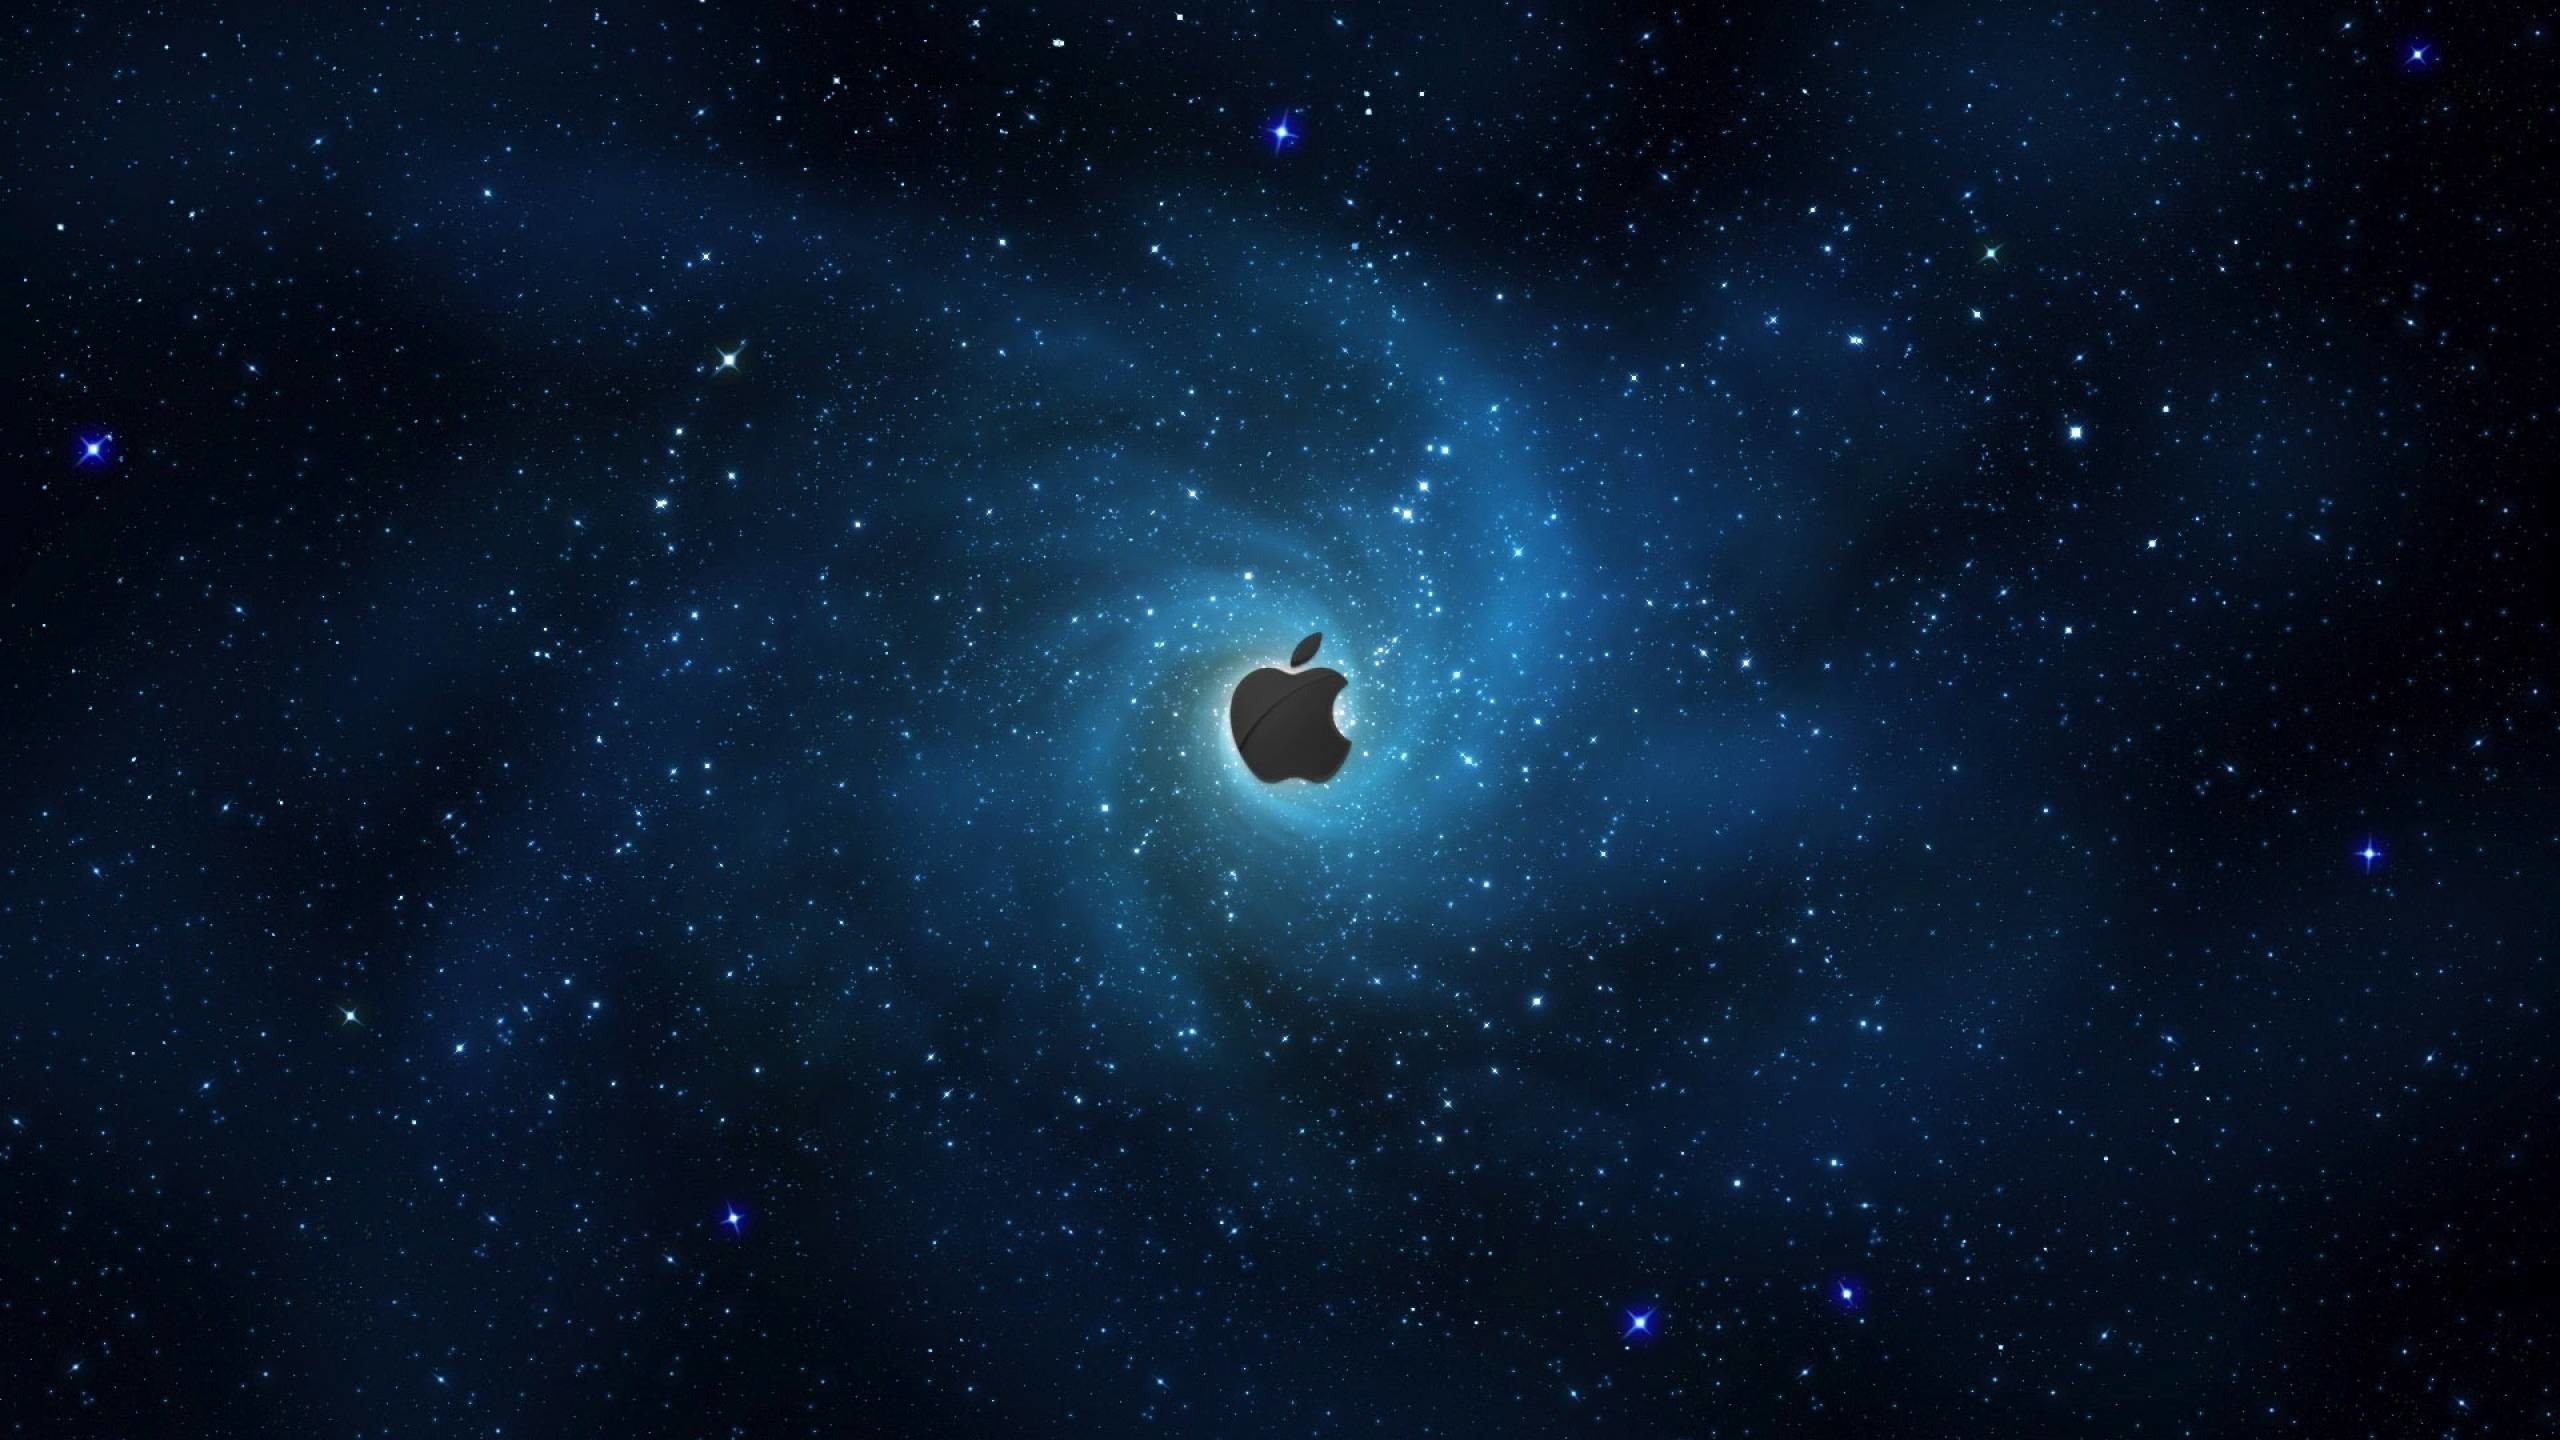 2560x1440 apple imac wallpapers - DriverLayer Search Engine